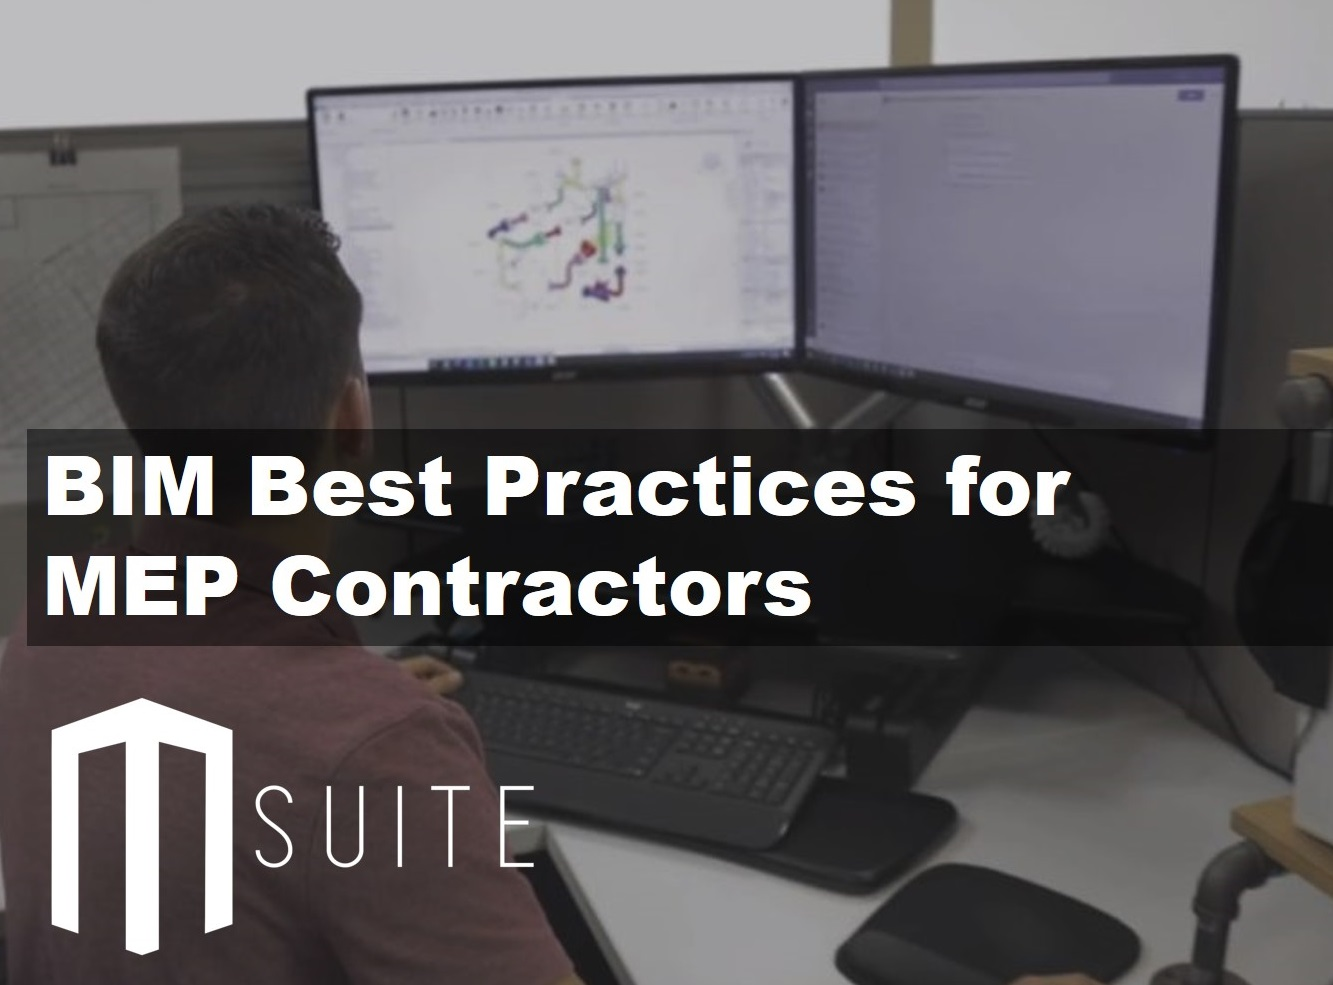 BIM Best Practices for MEP Contractors